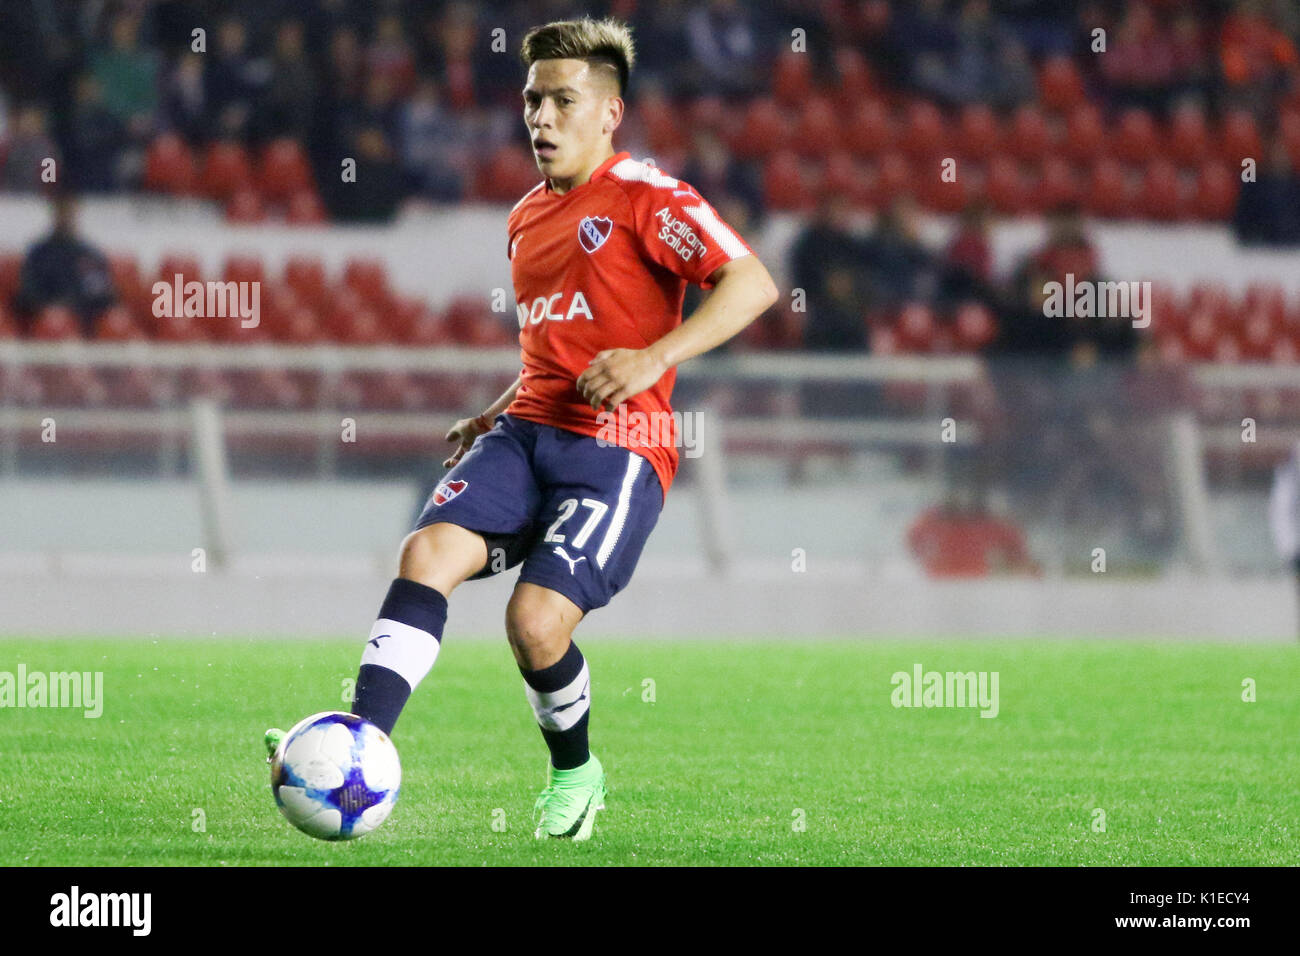 Buenos Aires, Argentina. 26th August, 2017. Ezequiel Barco of Independiente during the match between Independiente x Huracan for the 1st round of Superliga Argentina. Credit: Néstor J. Beremblum/Alamy Live News - Stock Image